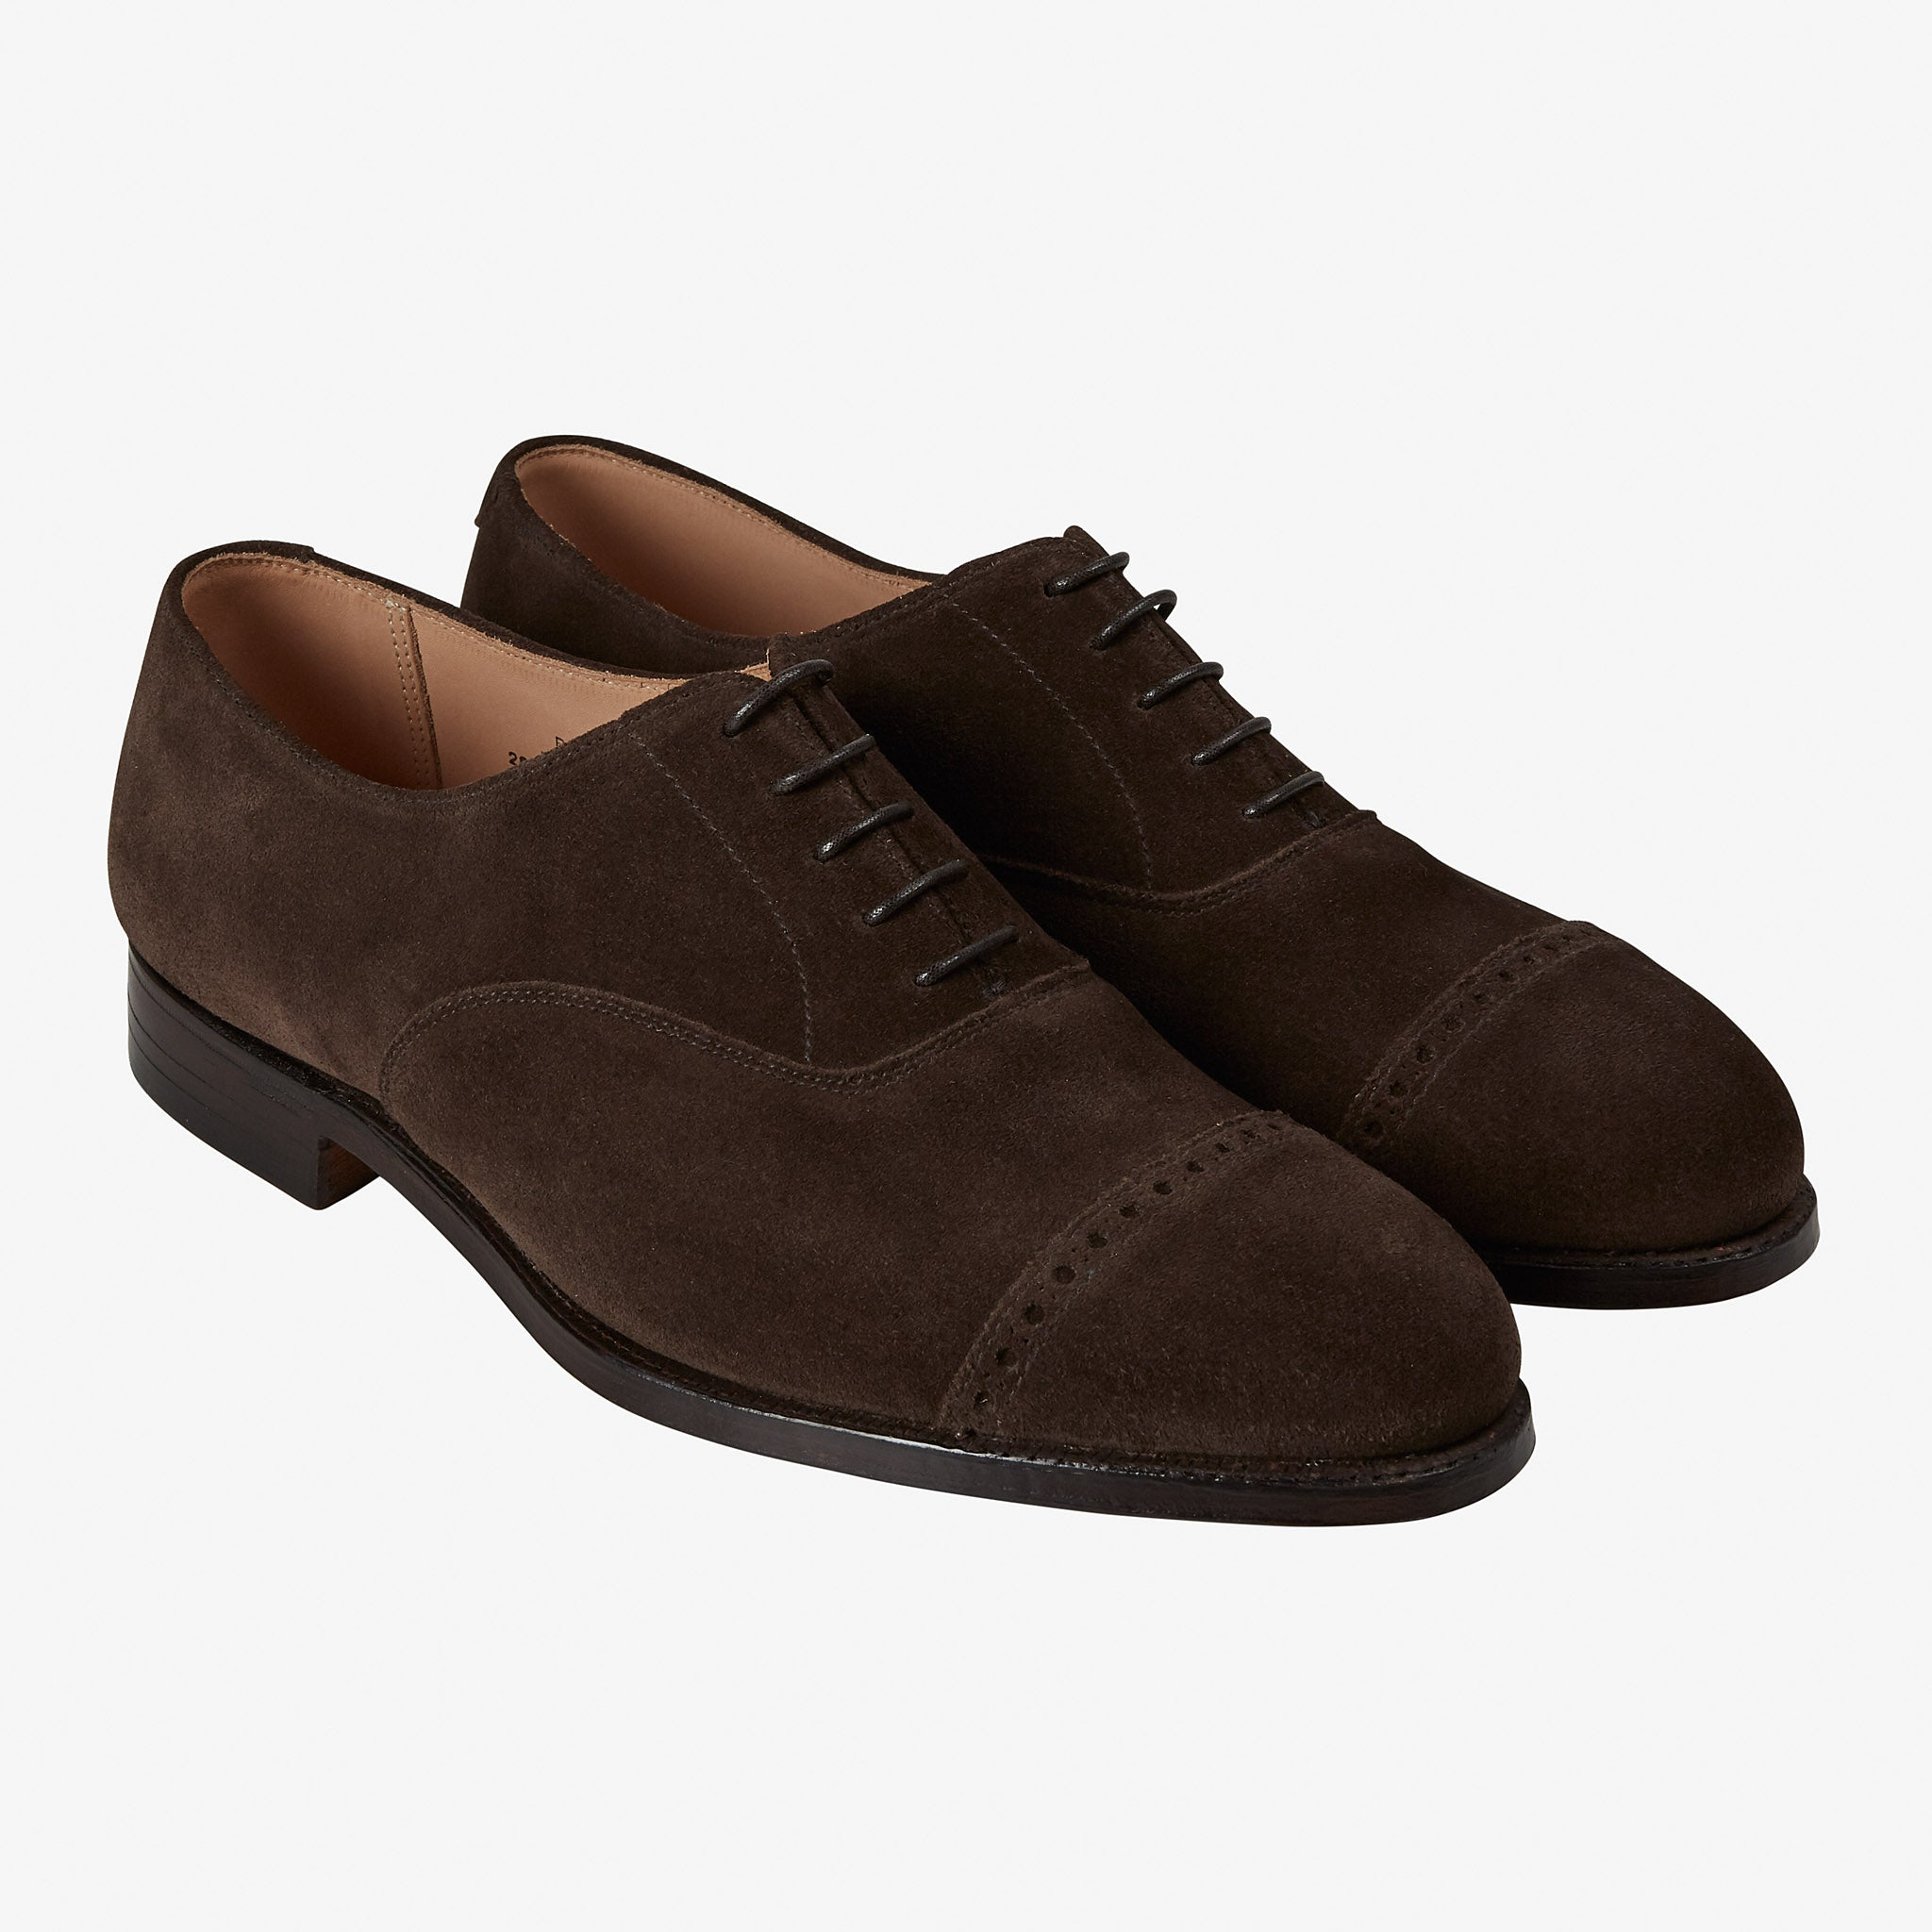 Crockett & Jones for Anglo-Italian Burlington Oxford Dark Brown Suede